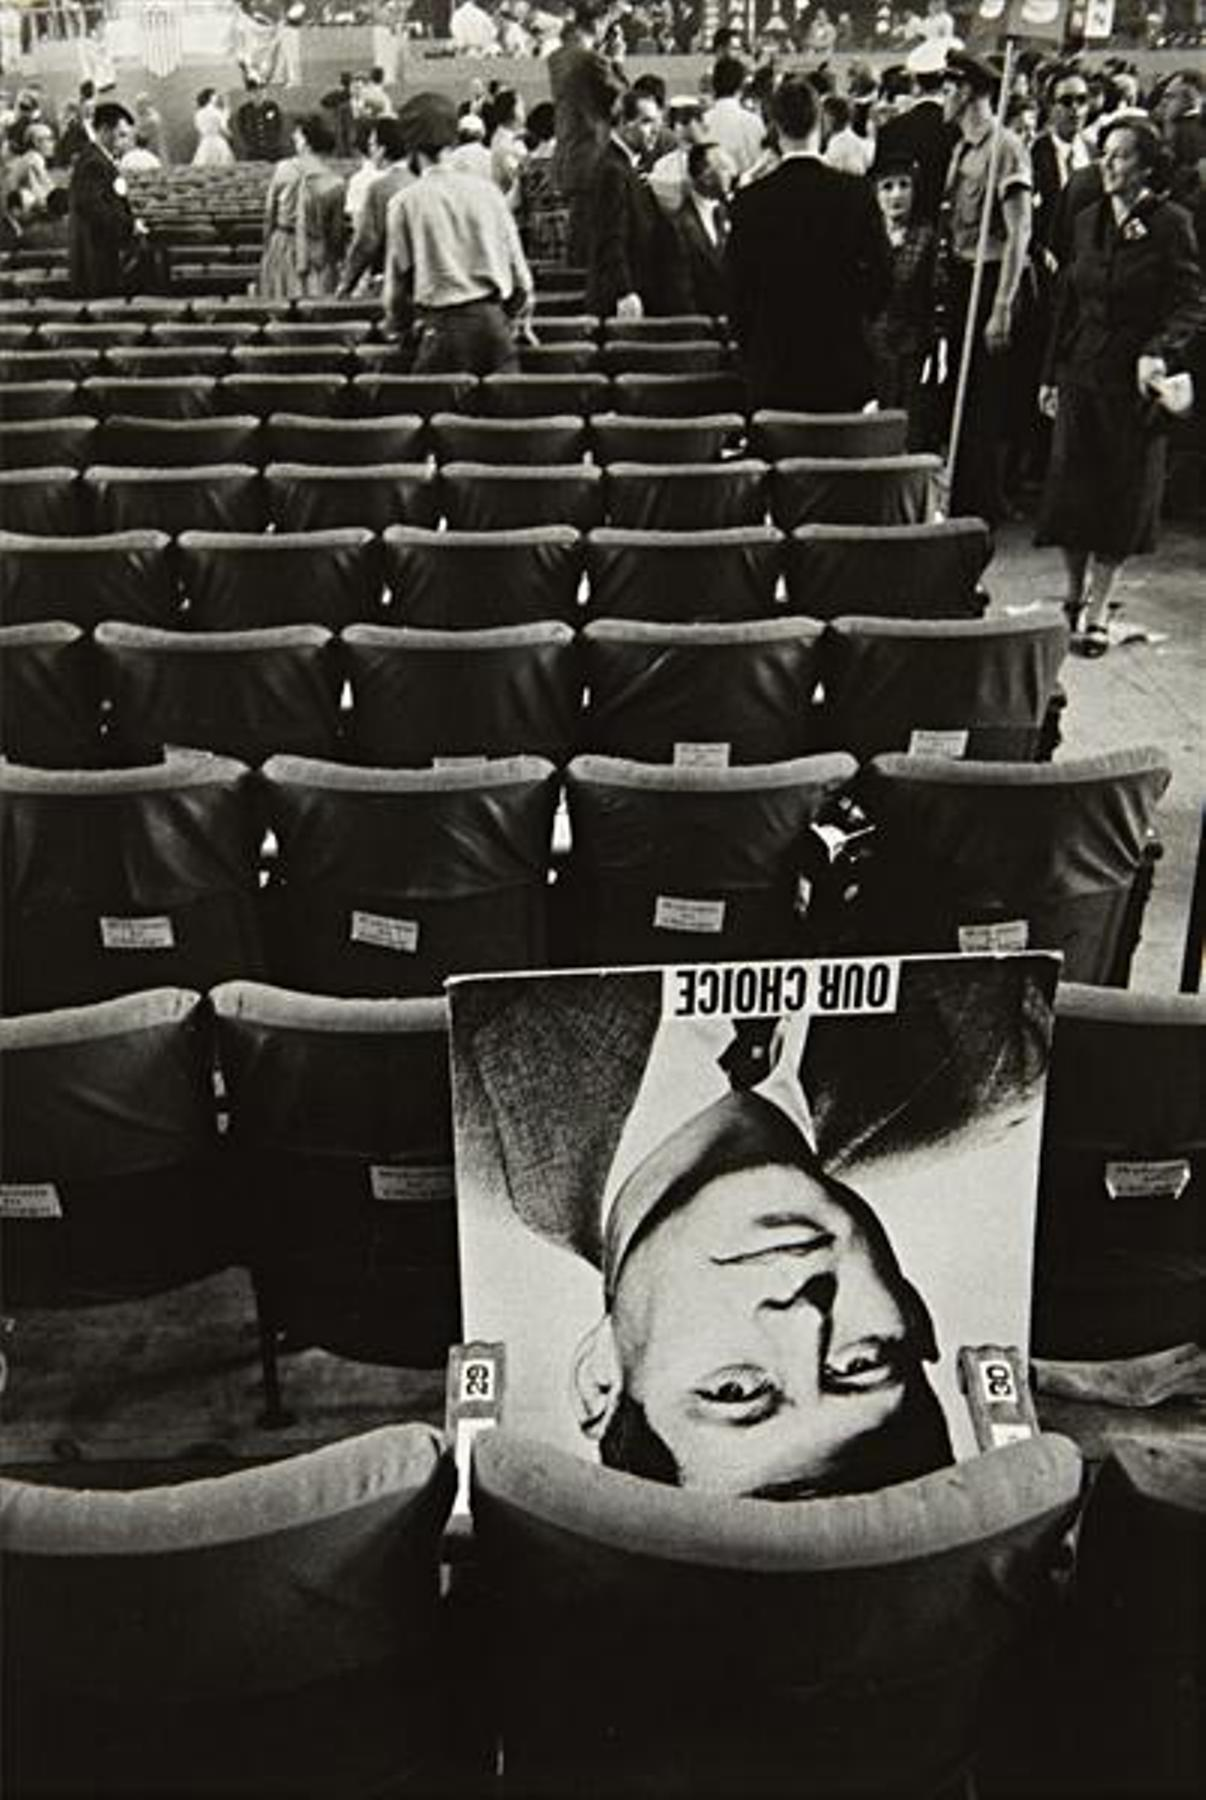 Robert Frank, Chicago Convention, 1956